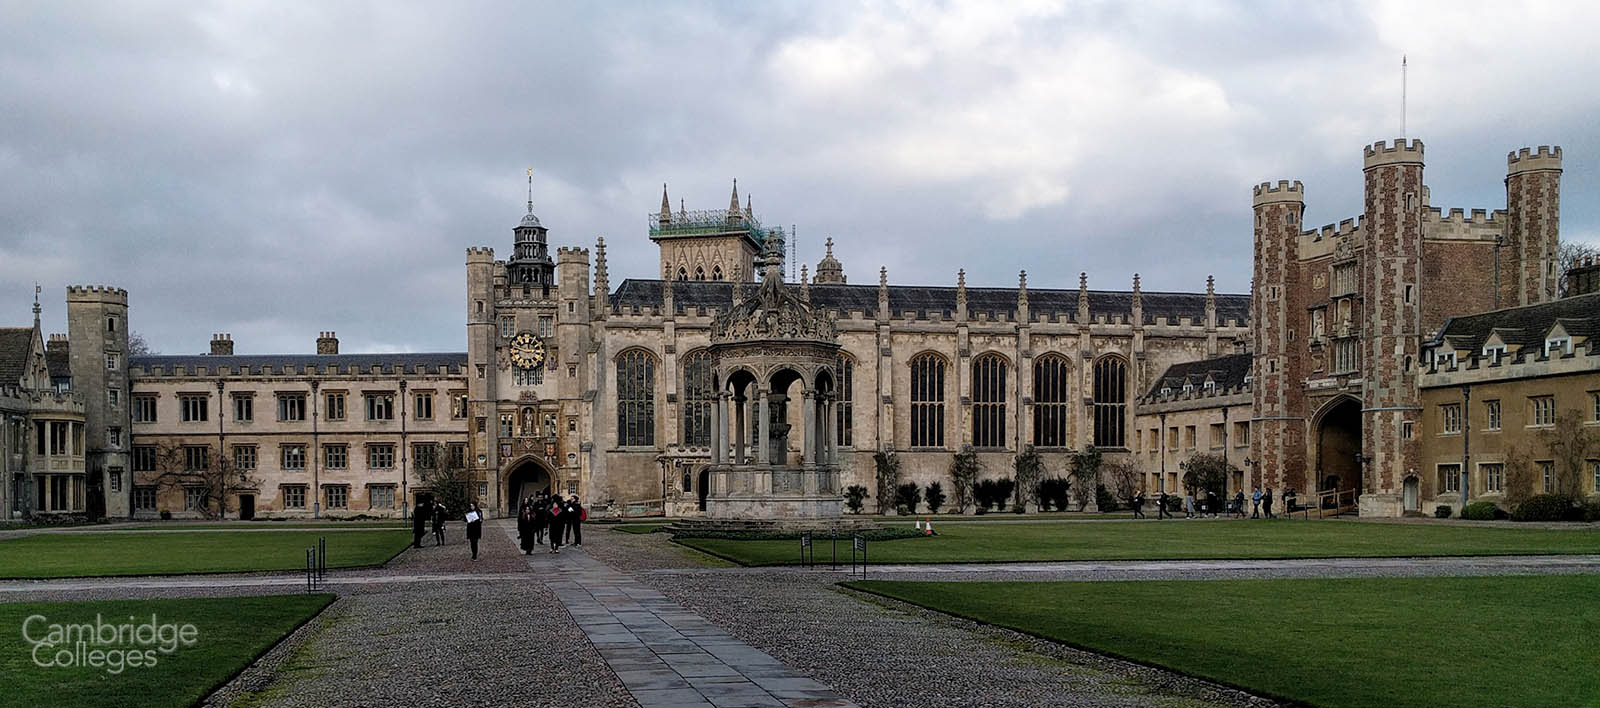 Trinity college, Cambridge's Great court